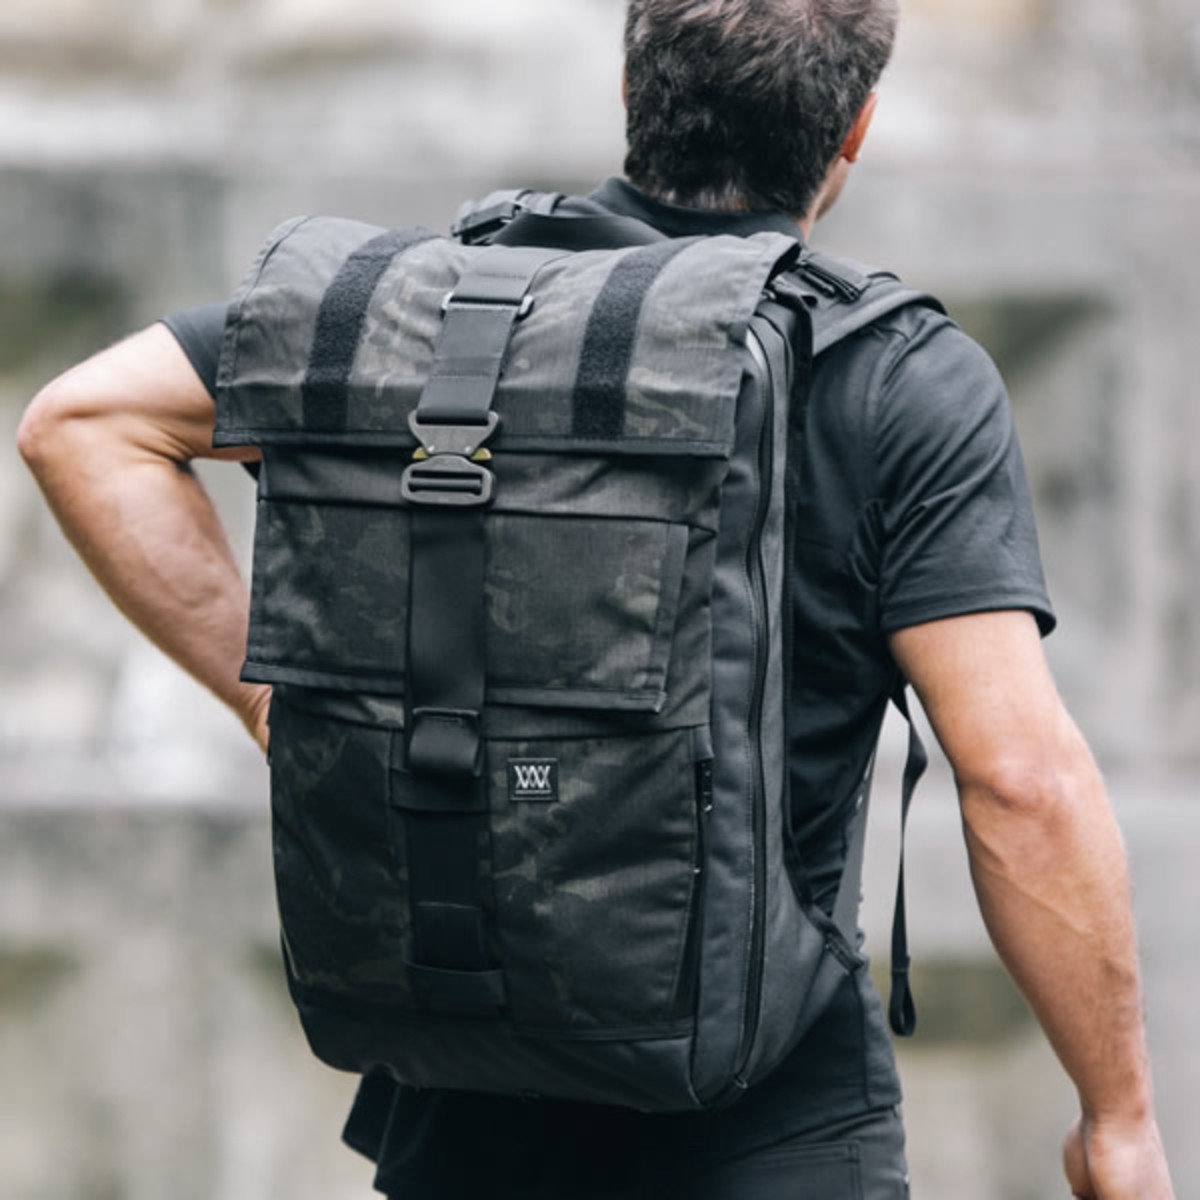 technical-backpacks-perfect-for-the-everyday-01